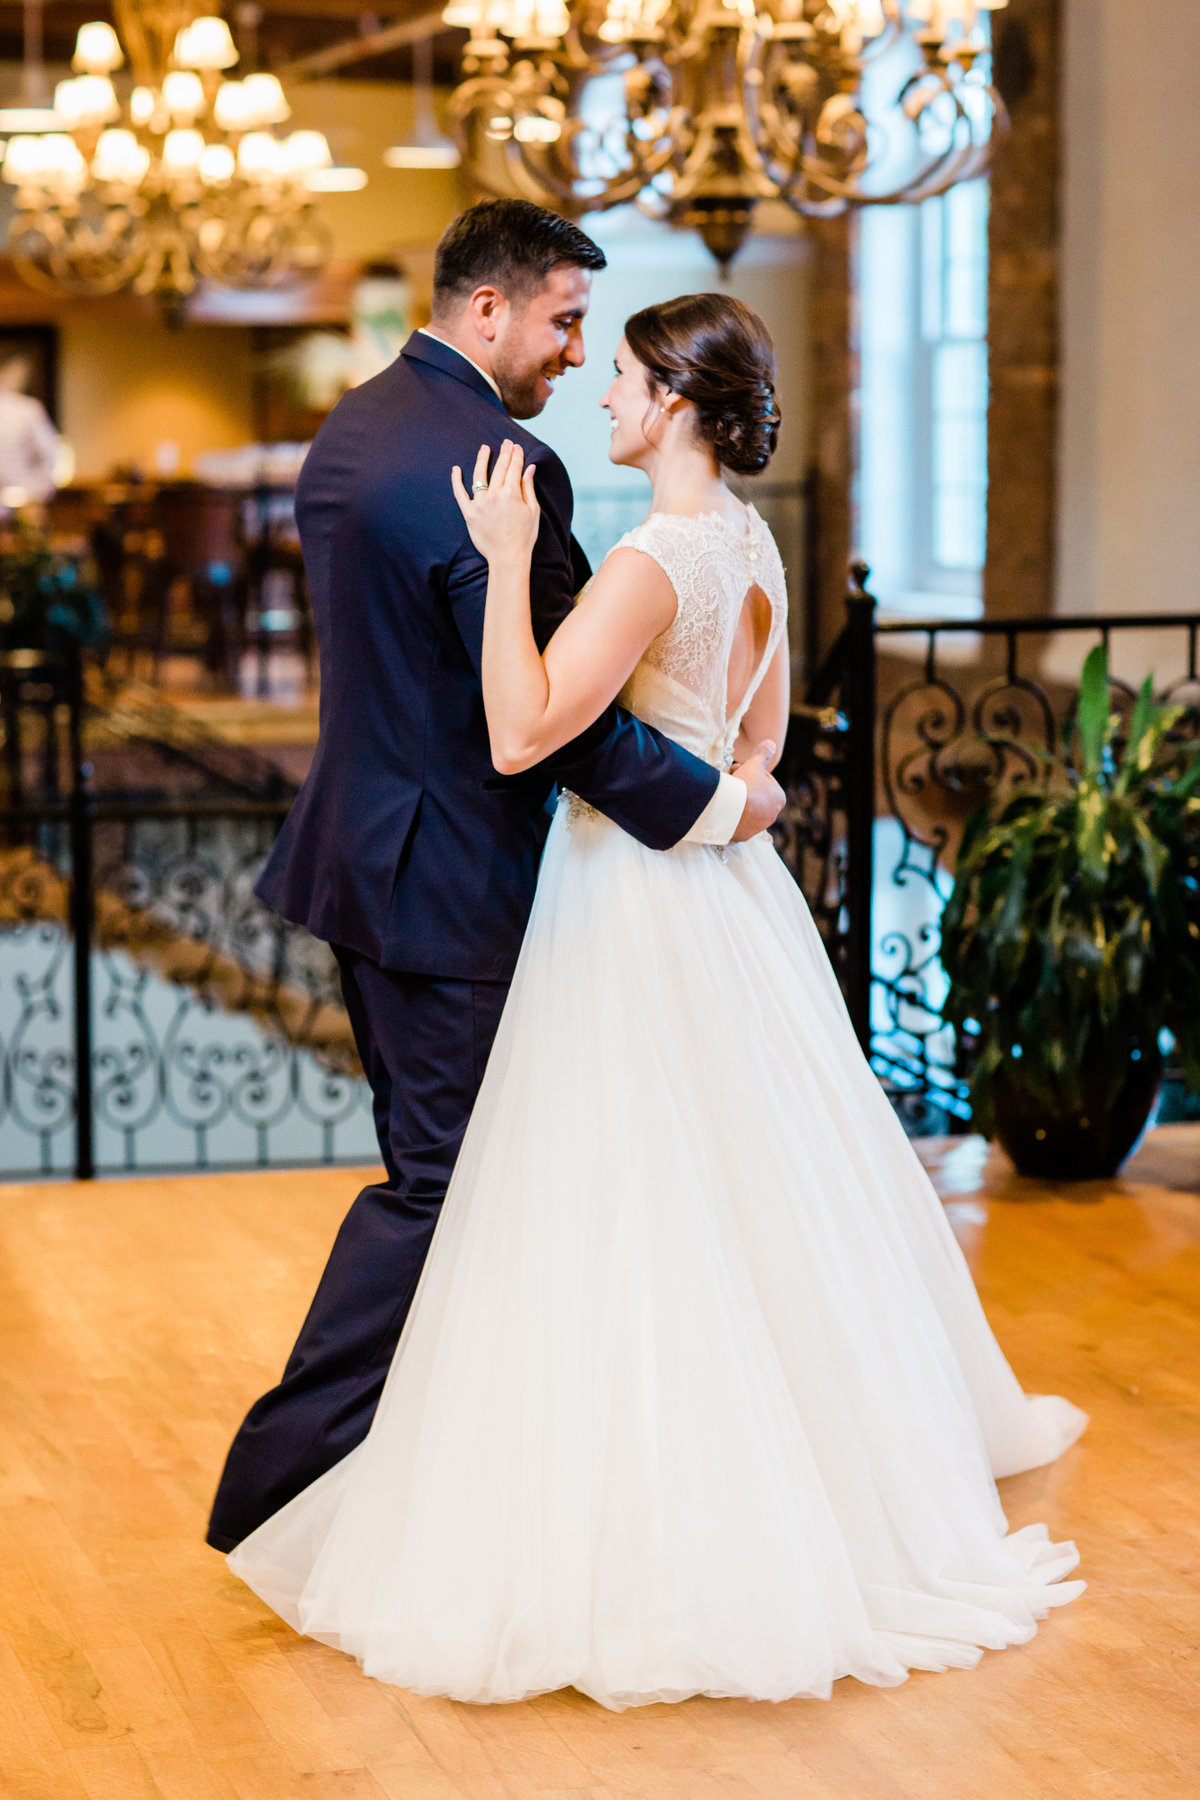 Danielle-Defayette-Photography-Revolution-Mill-Events-Wedding-Greensboro-NC-38